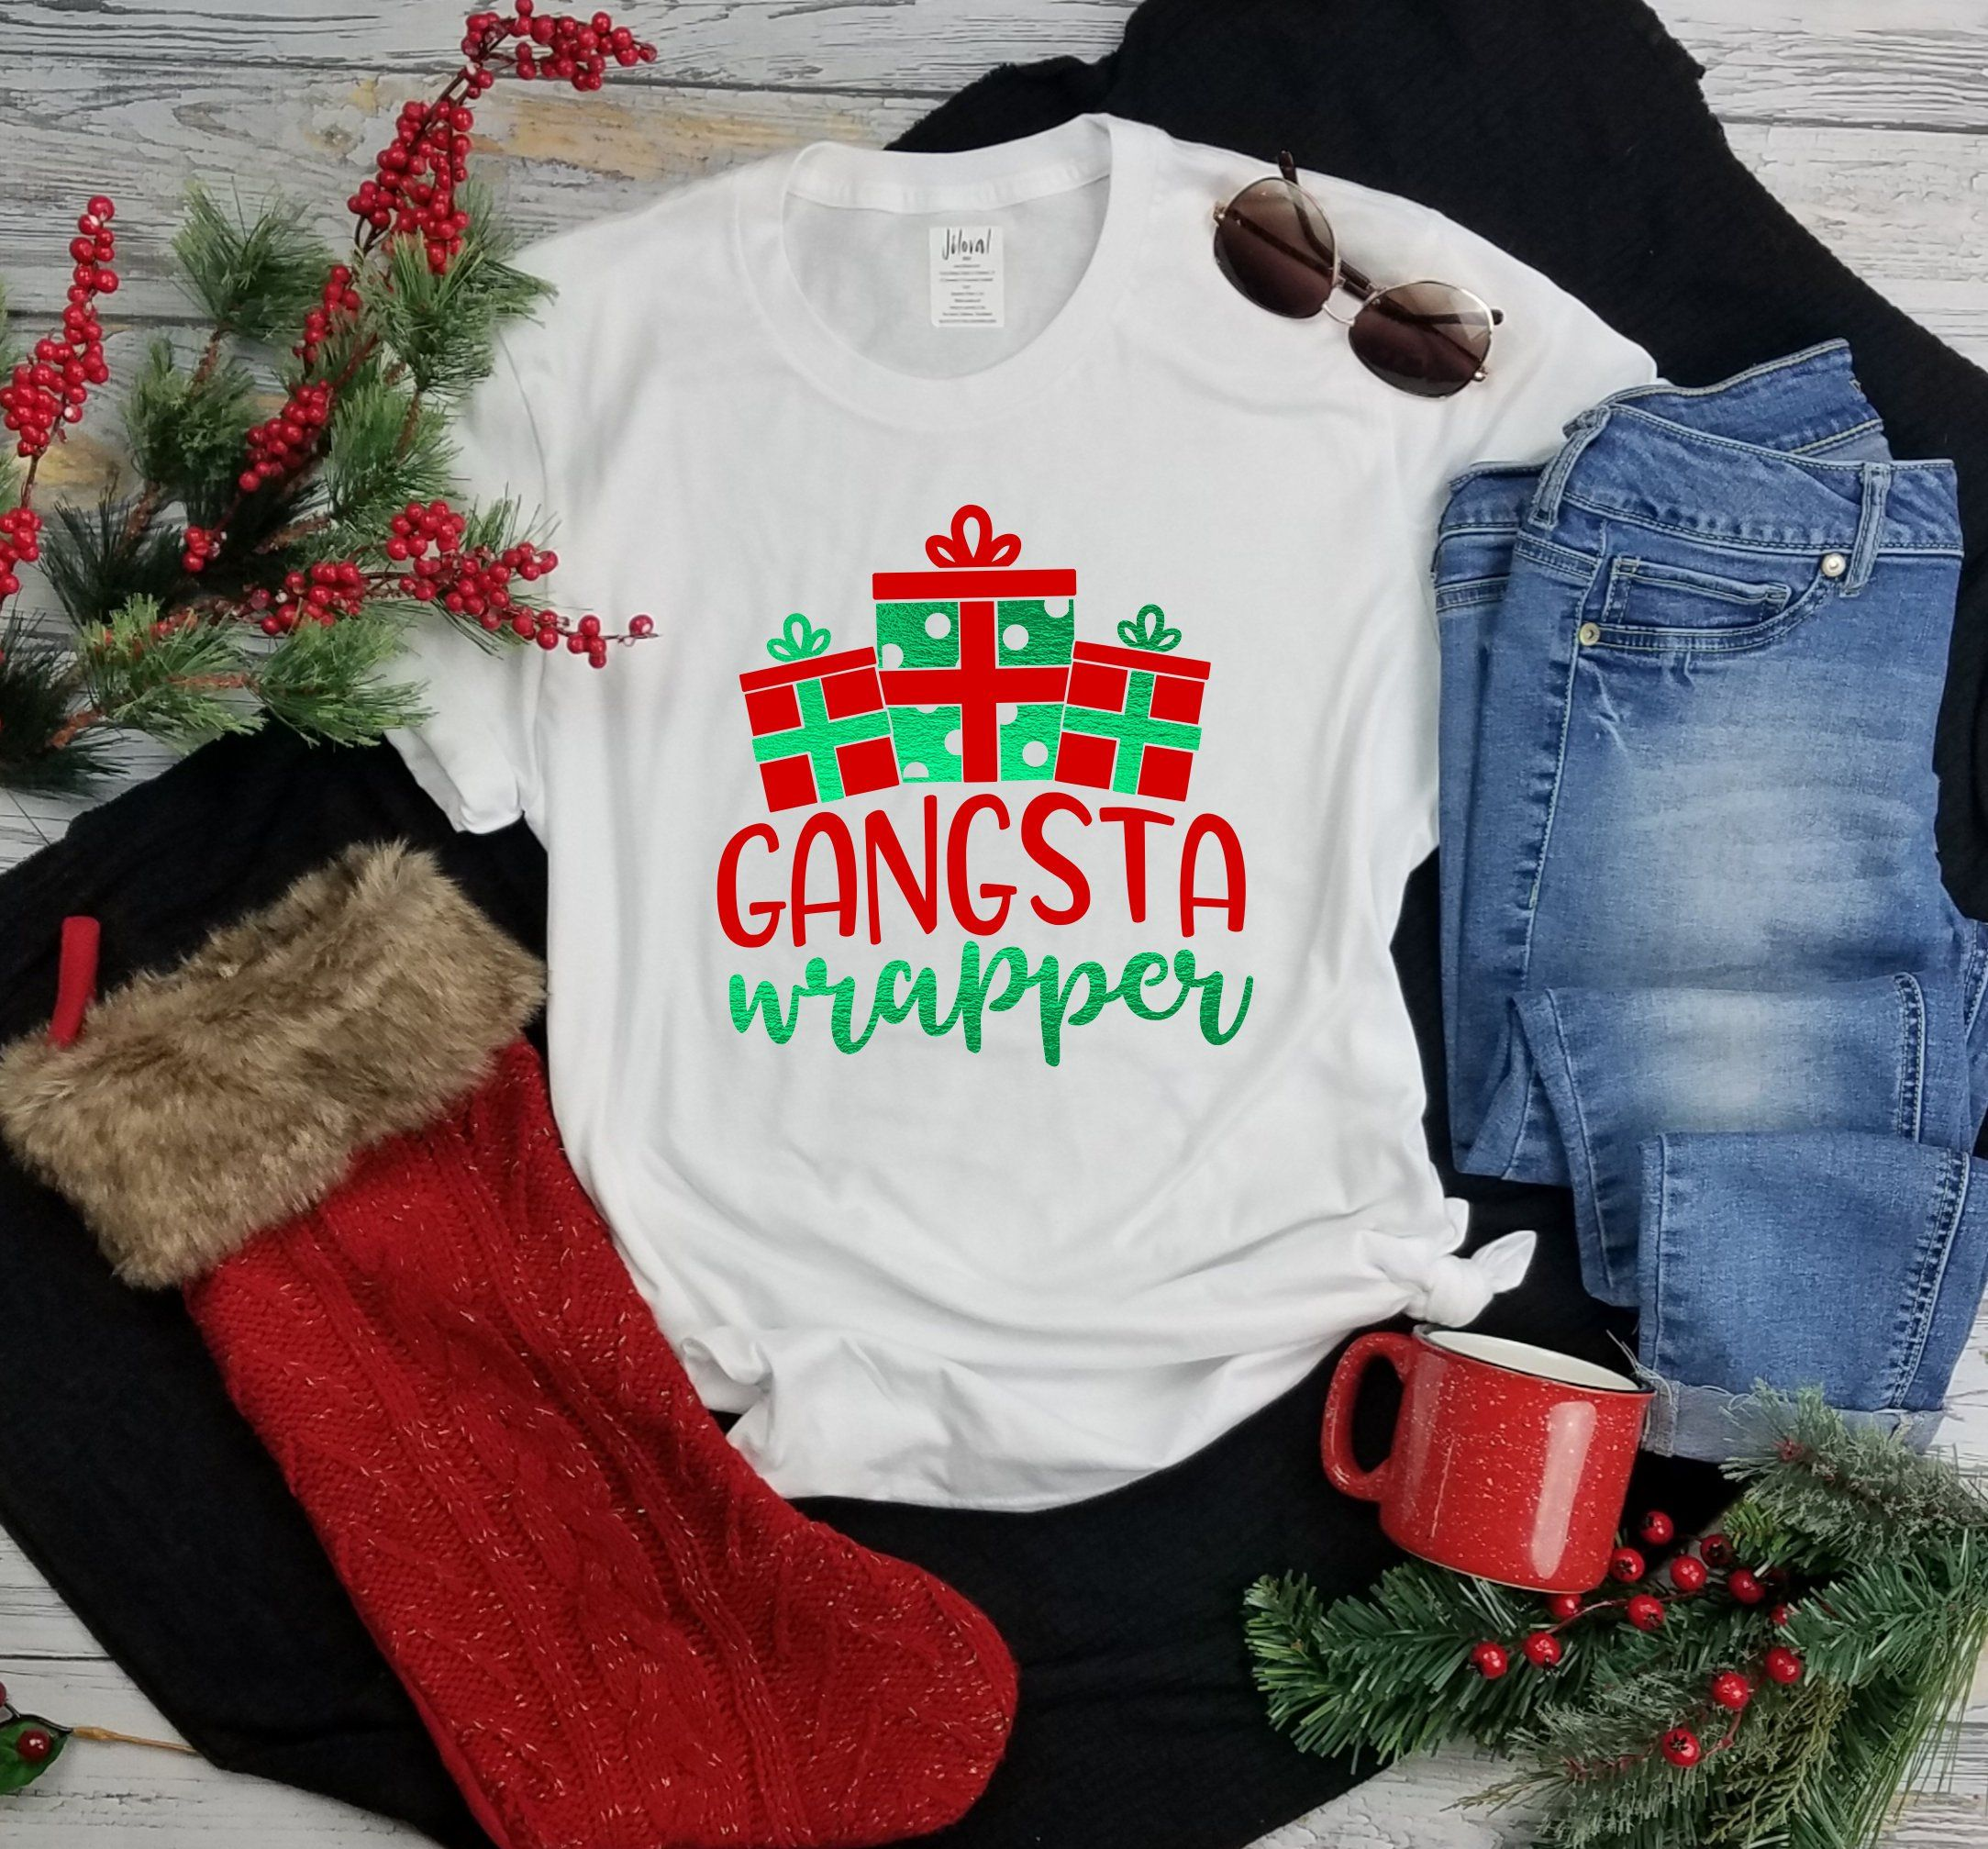 5c23b99c79 Gangsta Wrapper, Funny Holiday shirt, Christmas Tshirt, Graphic shirt, Gift  for mom, Gifts under 20, Festive shirt, gift wrapping, Humor by  JilovalBrand on ...